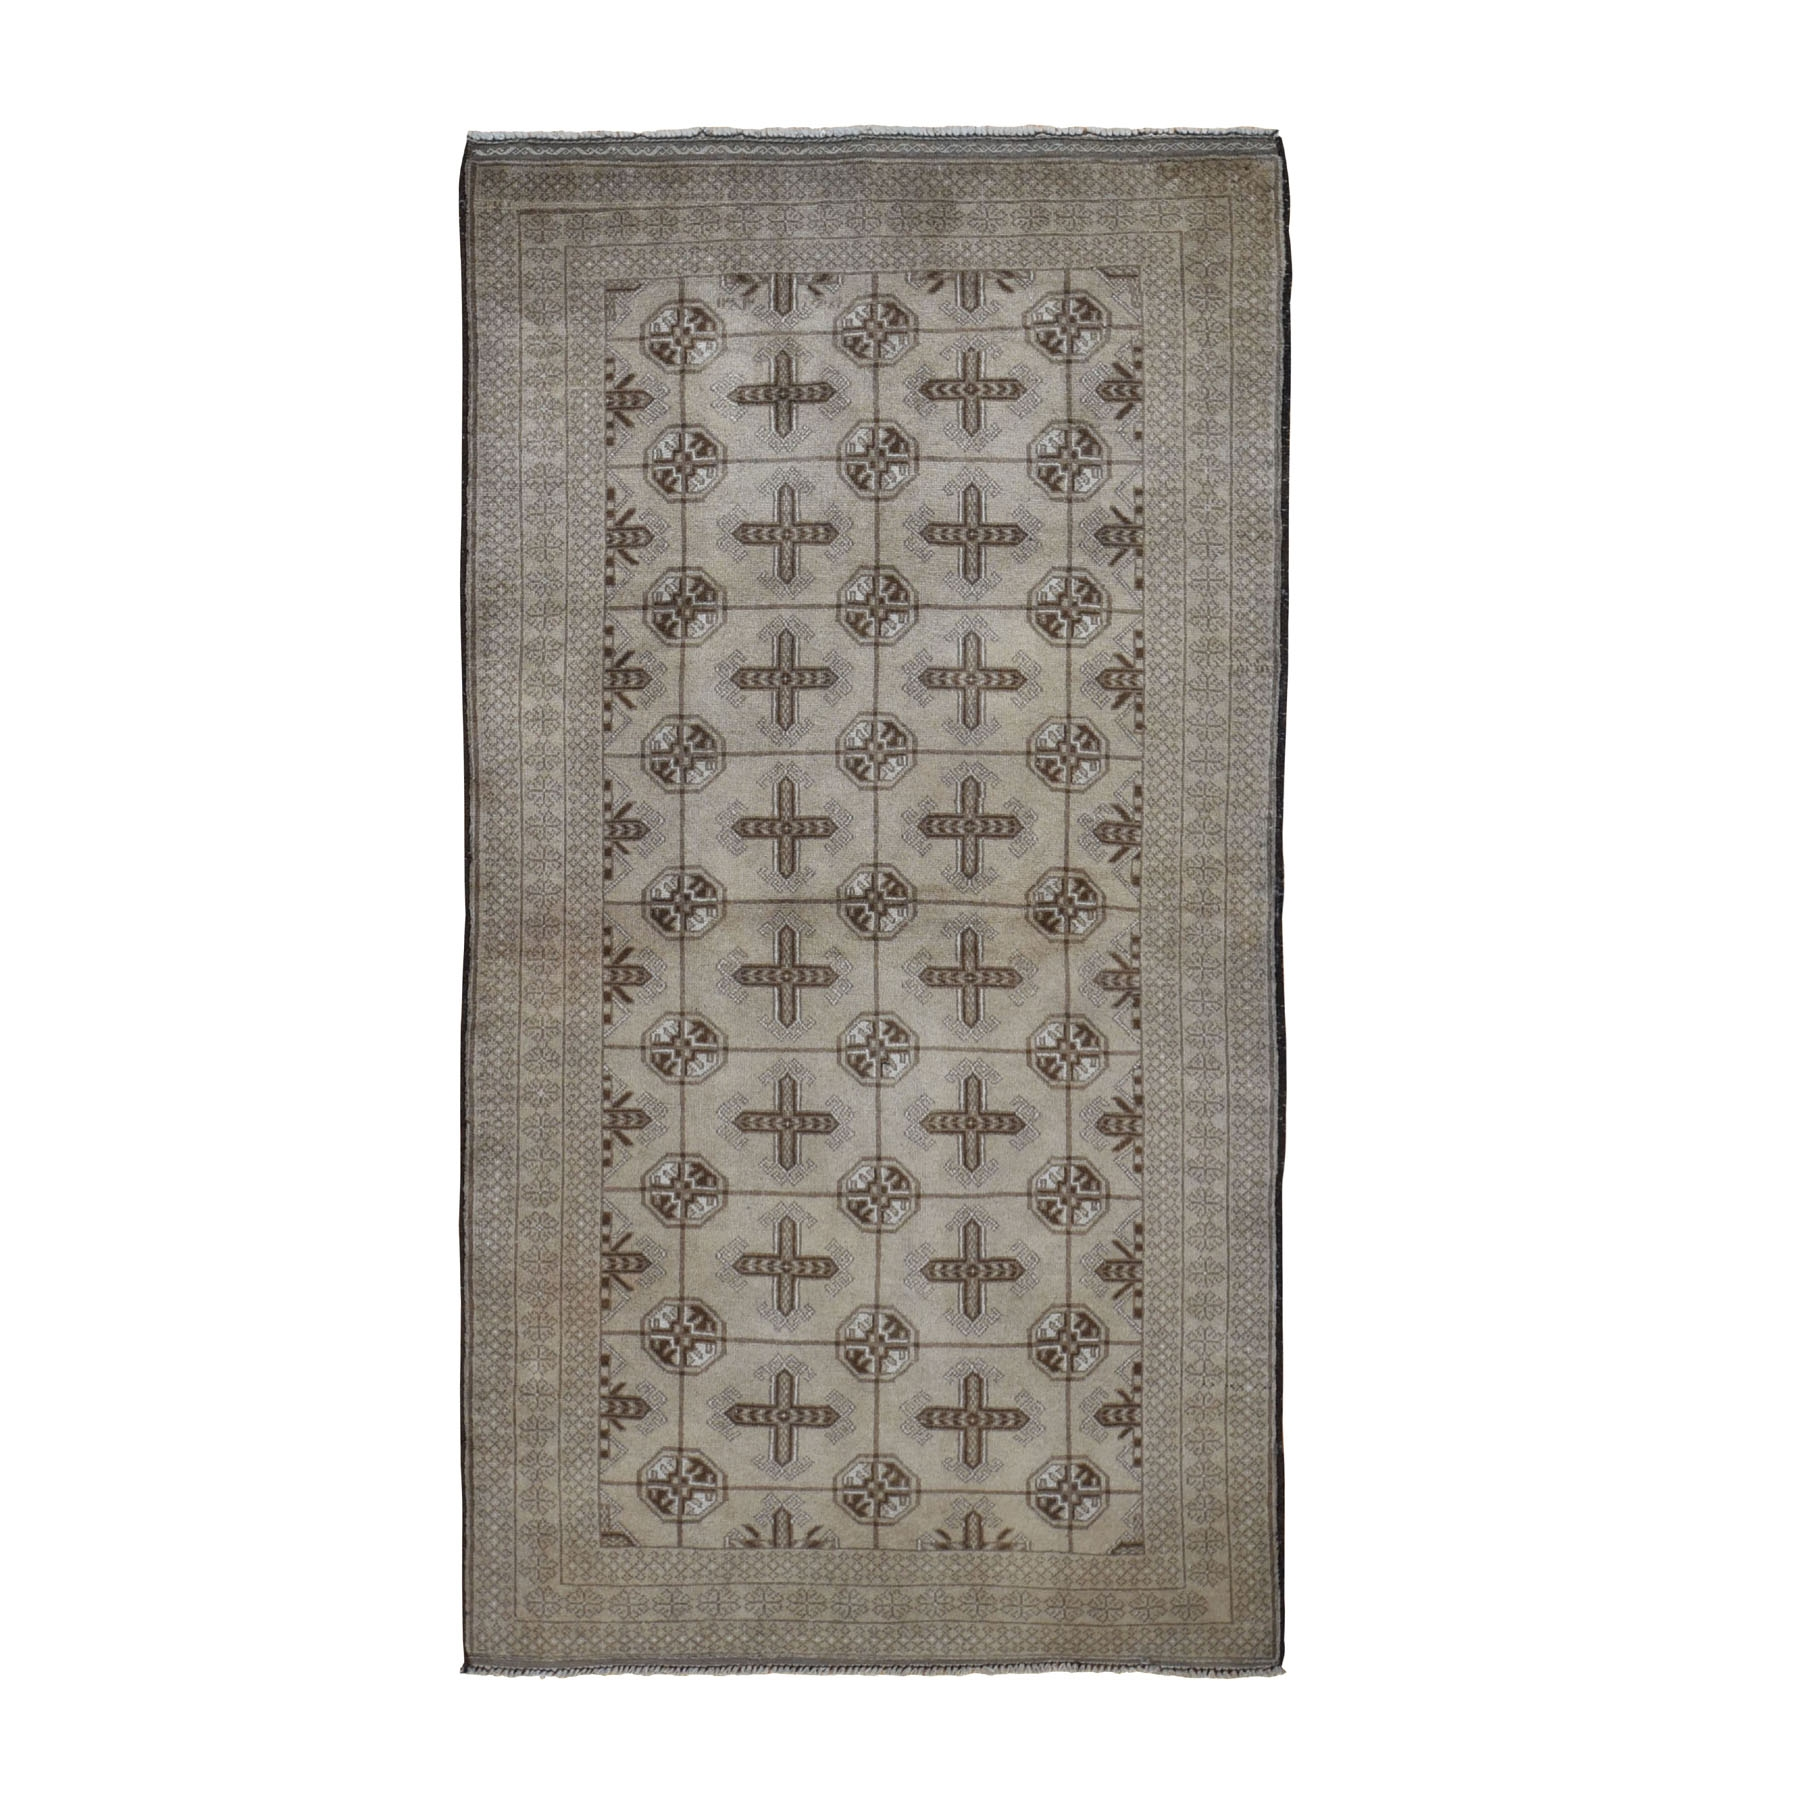 3-5 x6-7  Washed Out Turkoman Repetitive Design Wide Runner Tribal Rug